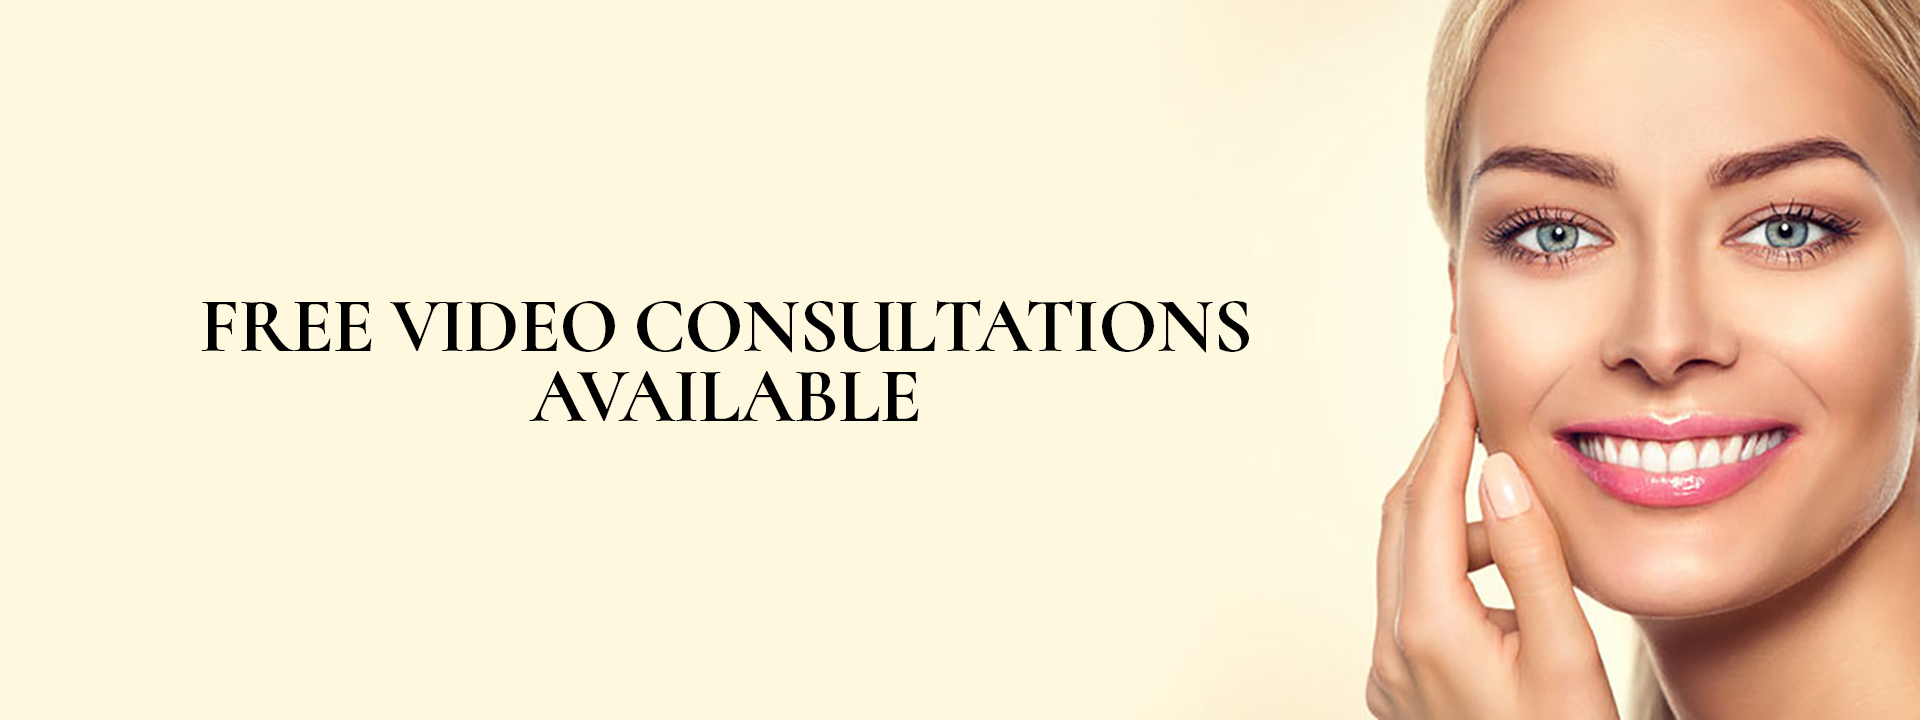 Video Consultations with Sparx